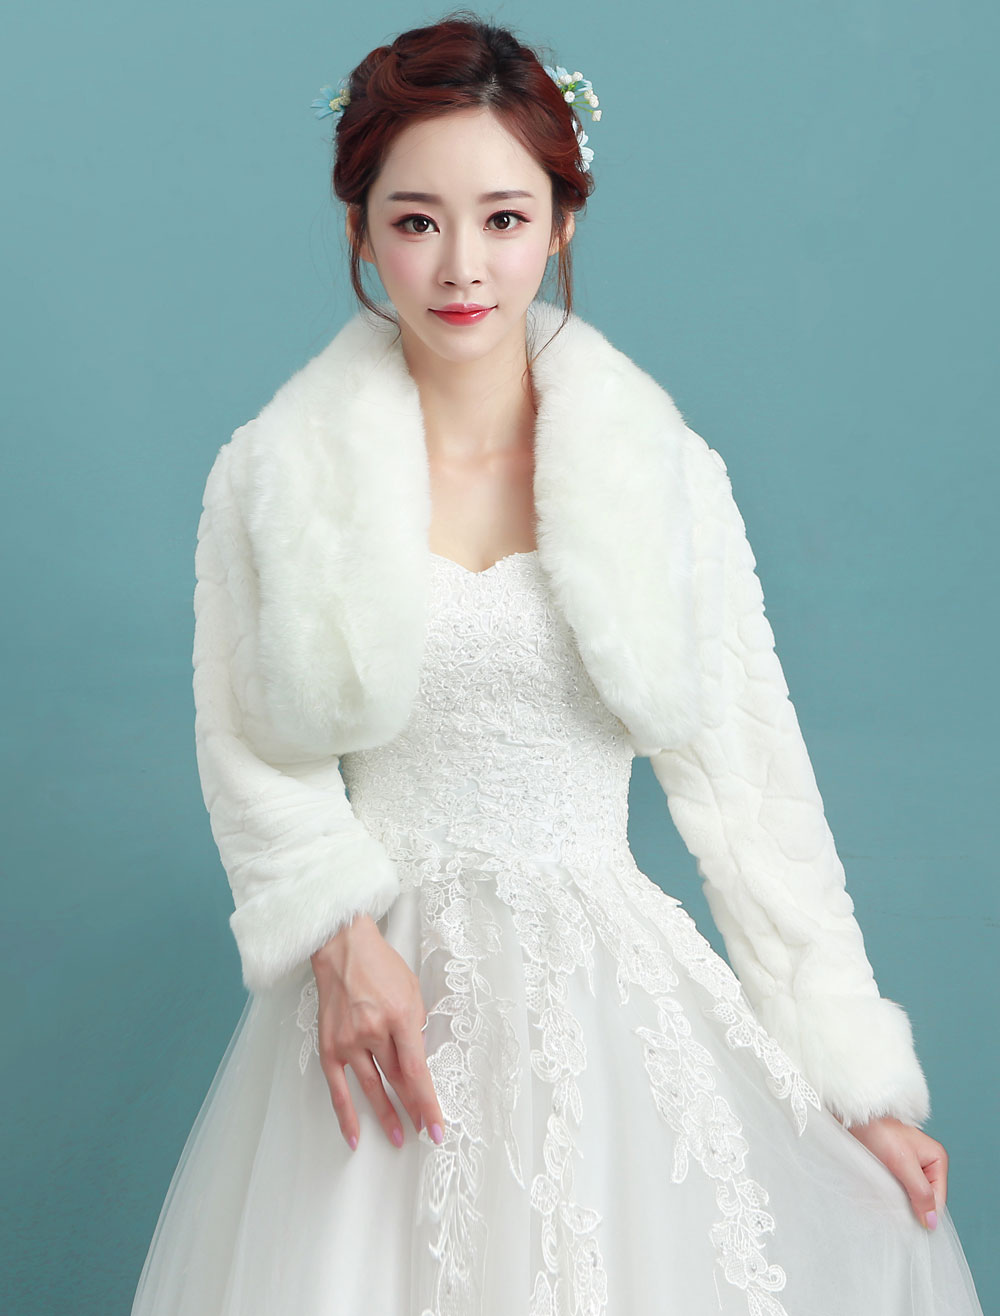 Bride jacket winter wedding